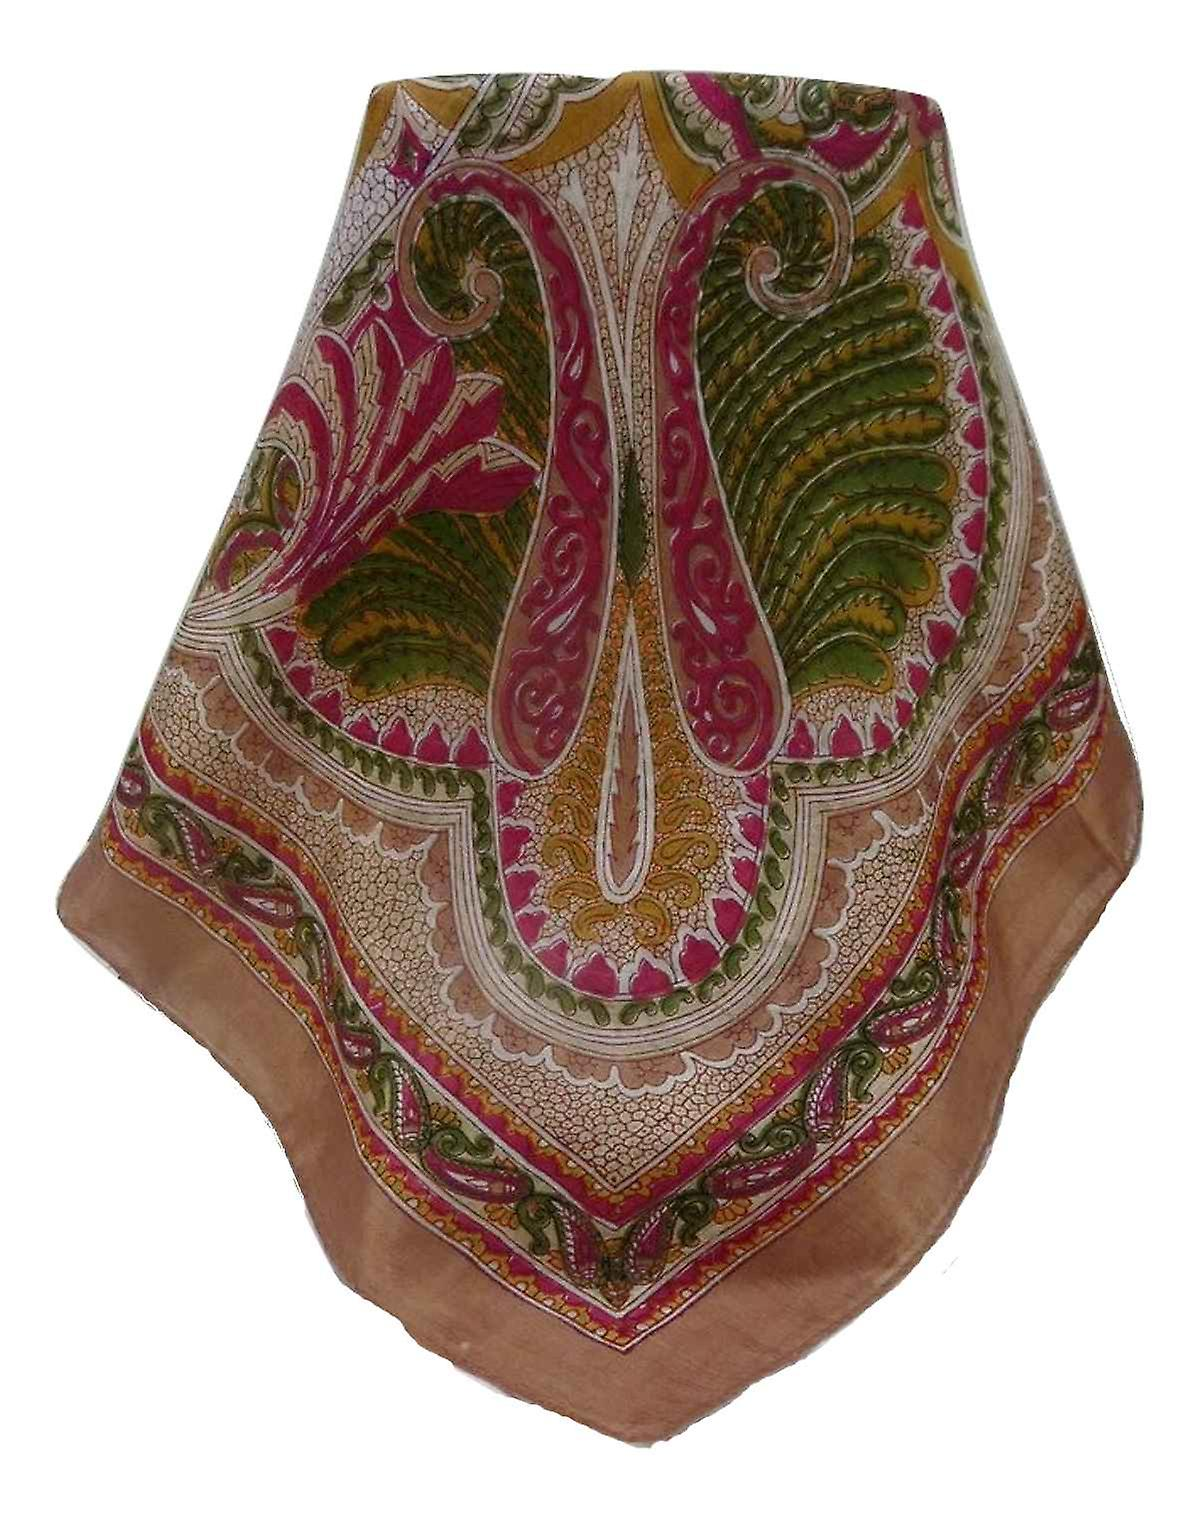 Mulberry Silk Traditional Square Scarf Shakir Chestnut by Pashmina & Silk